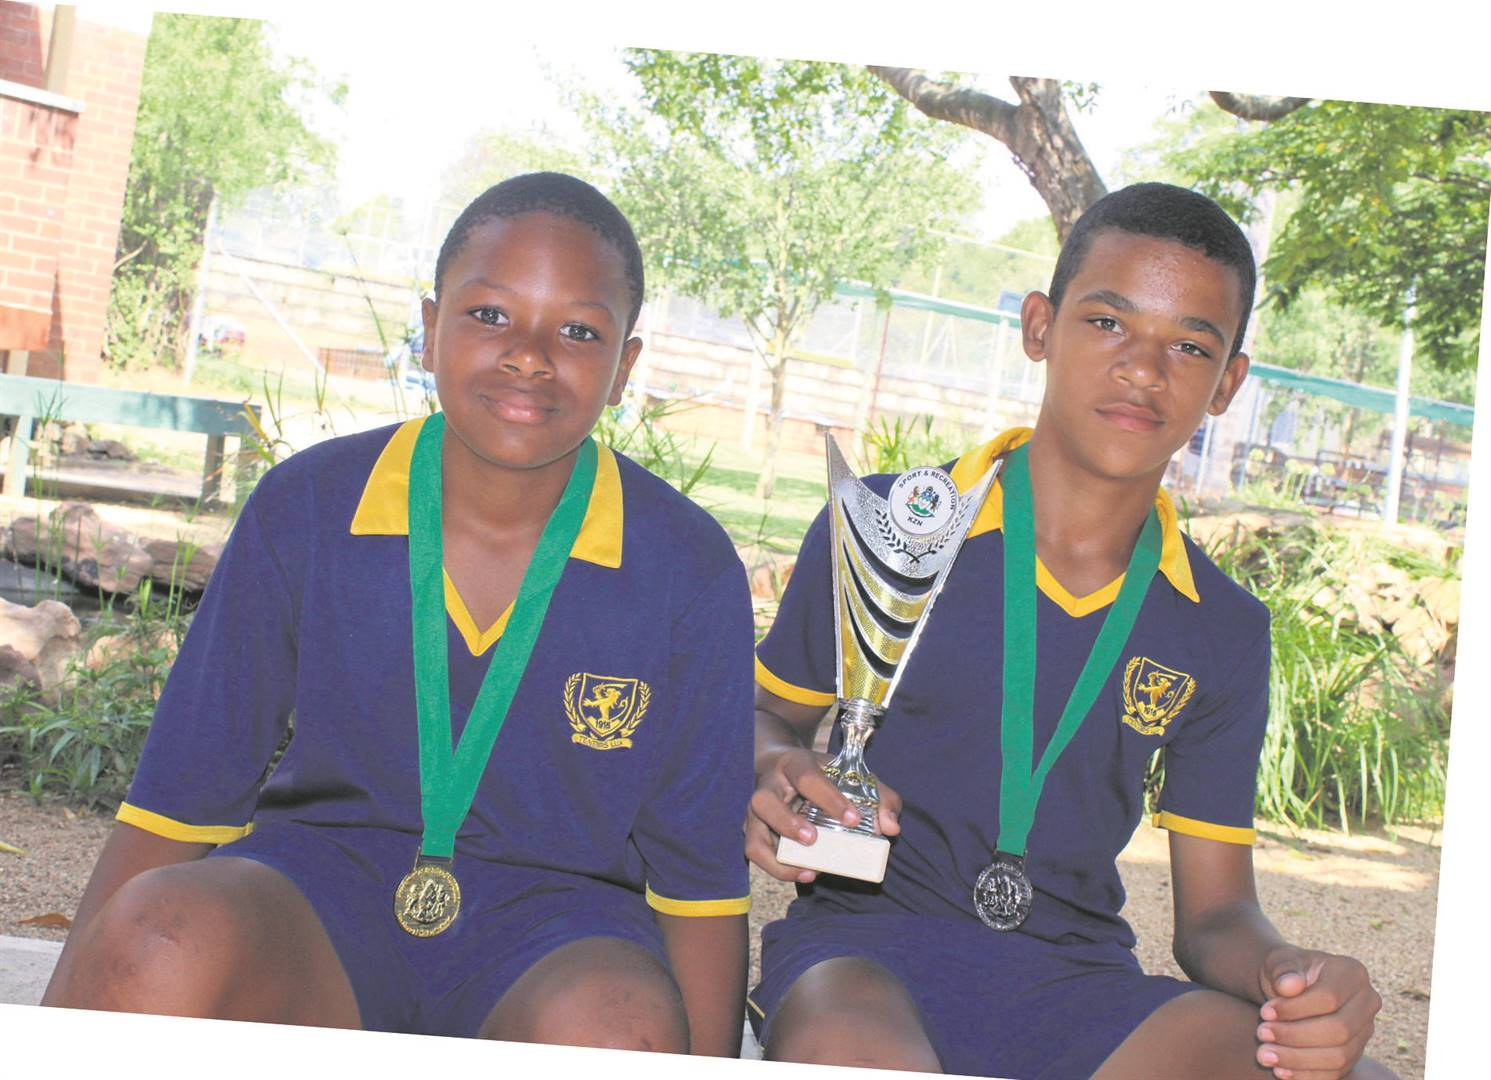 Scottsville School is very proud of boys Khanyisa Majozi (left) and Malachi Momple for their outstanding results at the KZN Soccer Tournament recently. PHOTO: SUPPLIED